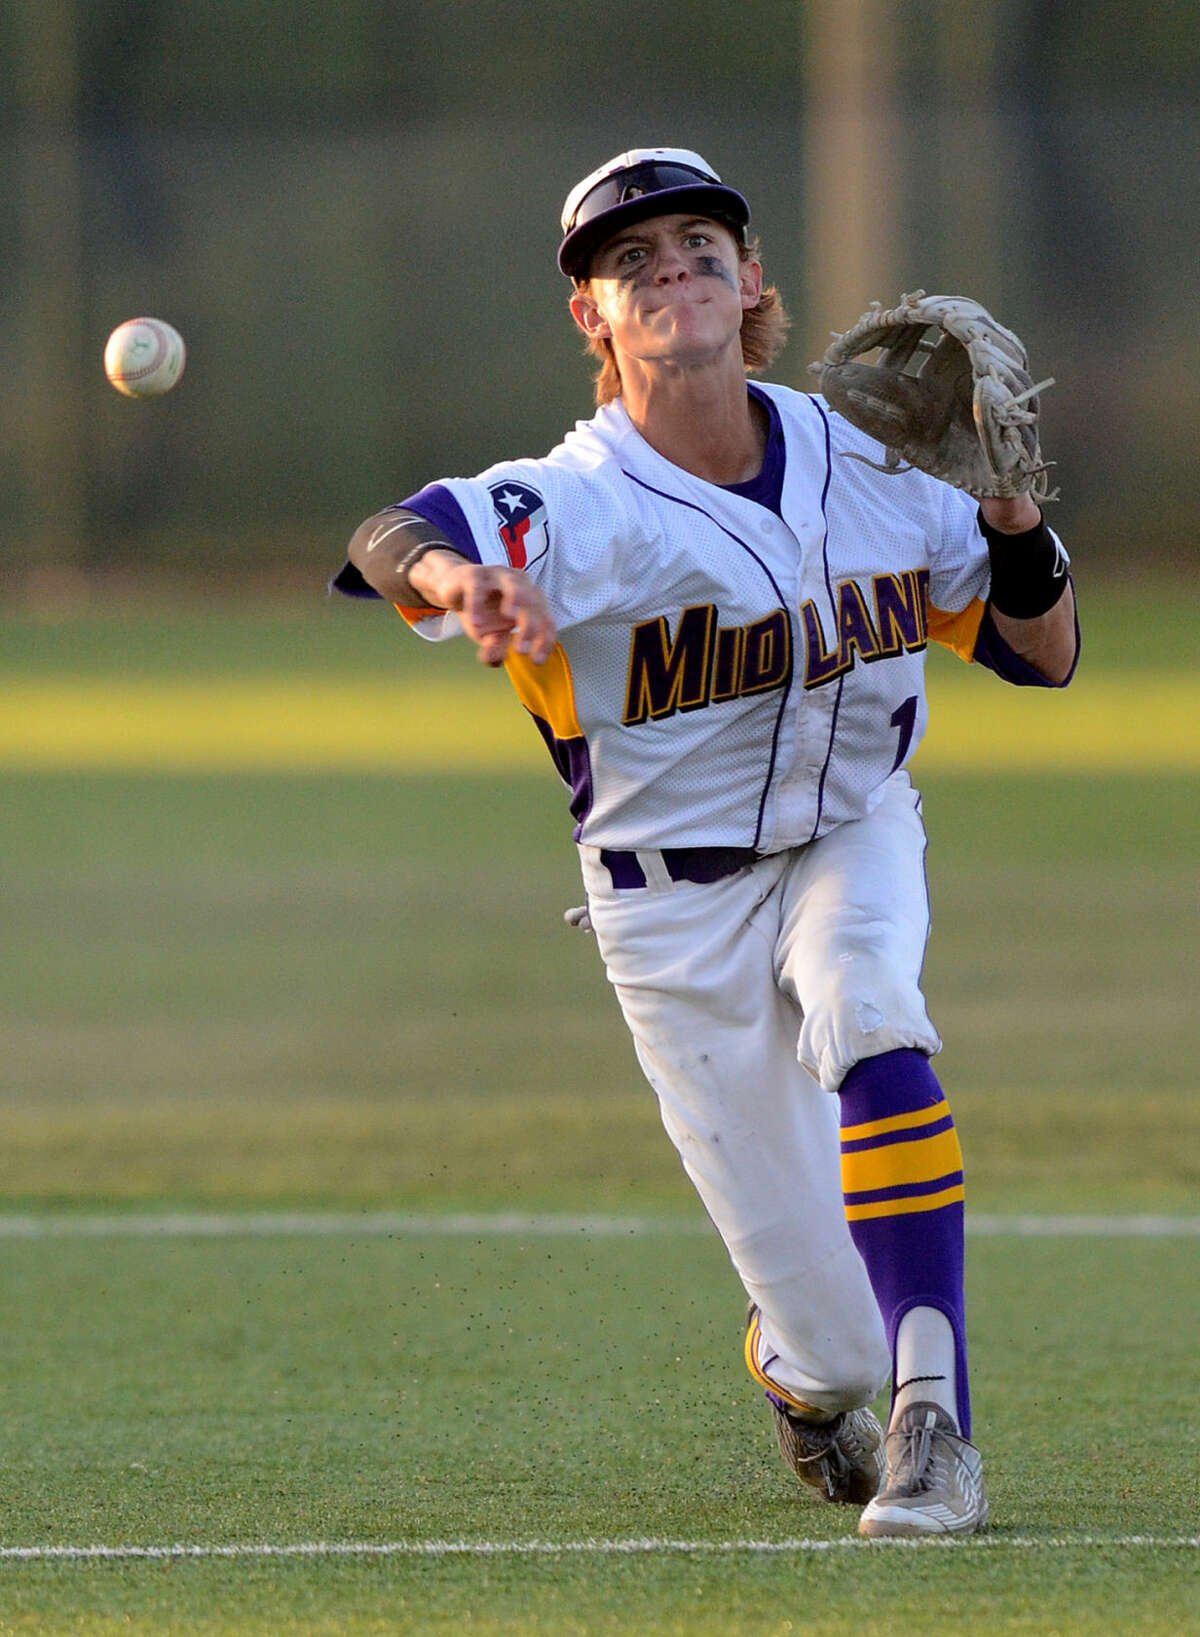 Midland High's Jaxon Hallmark throws to first base for an out against Arlington Lamar in game three of the 6A bi-district playoff on Saturday, May 9, 2015 at Christensen Stadium. James Durbin/Reporter-Telegram